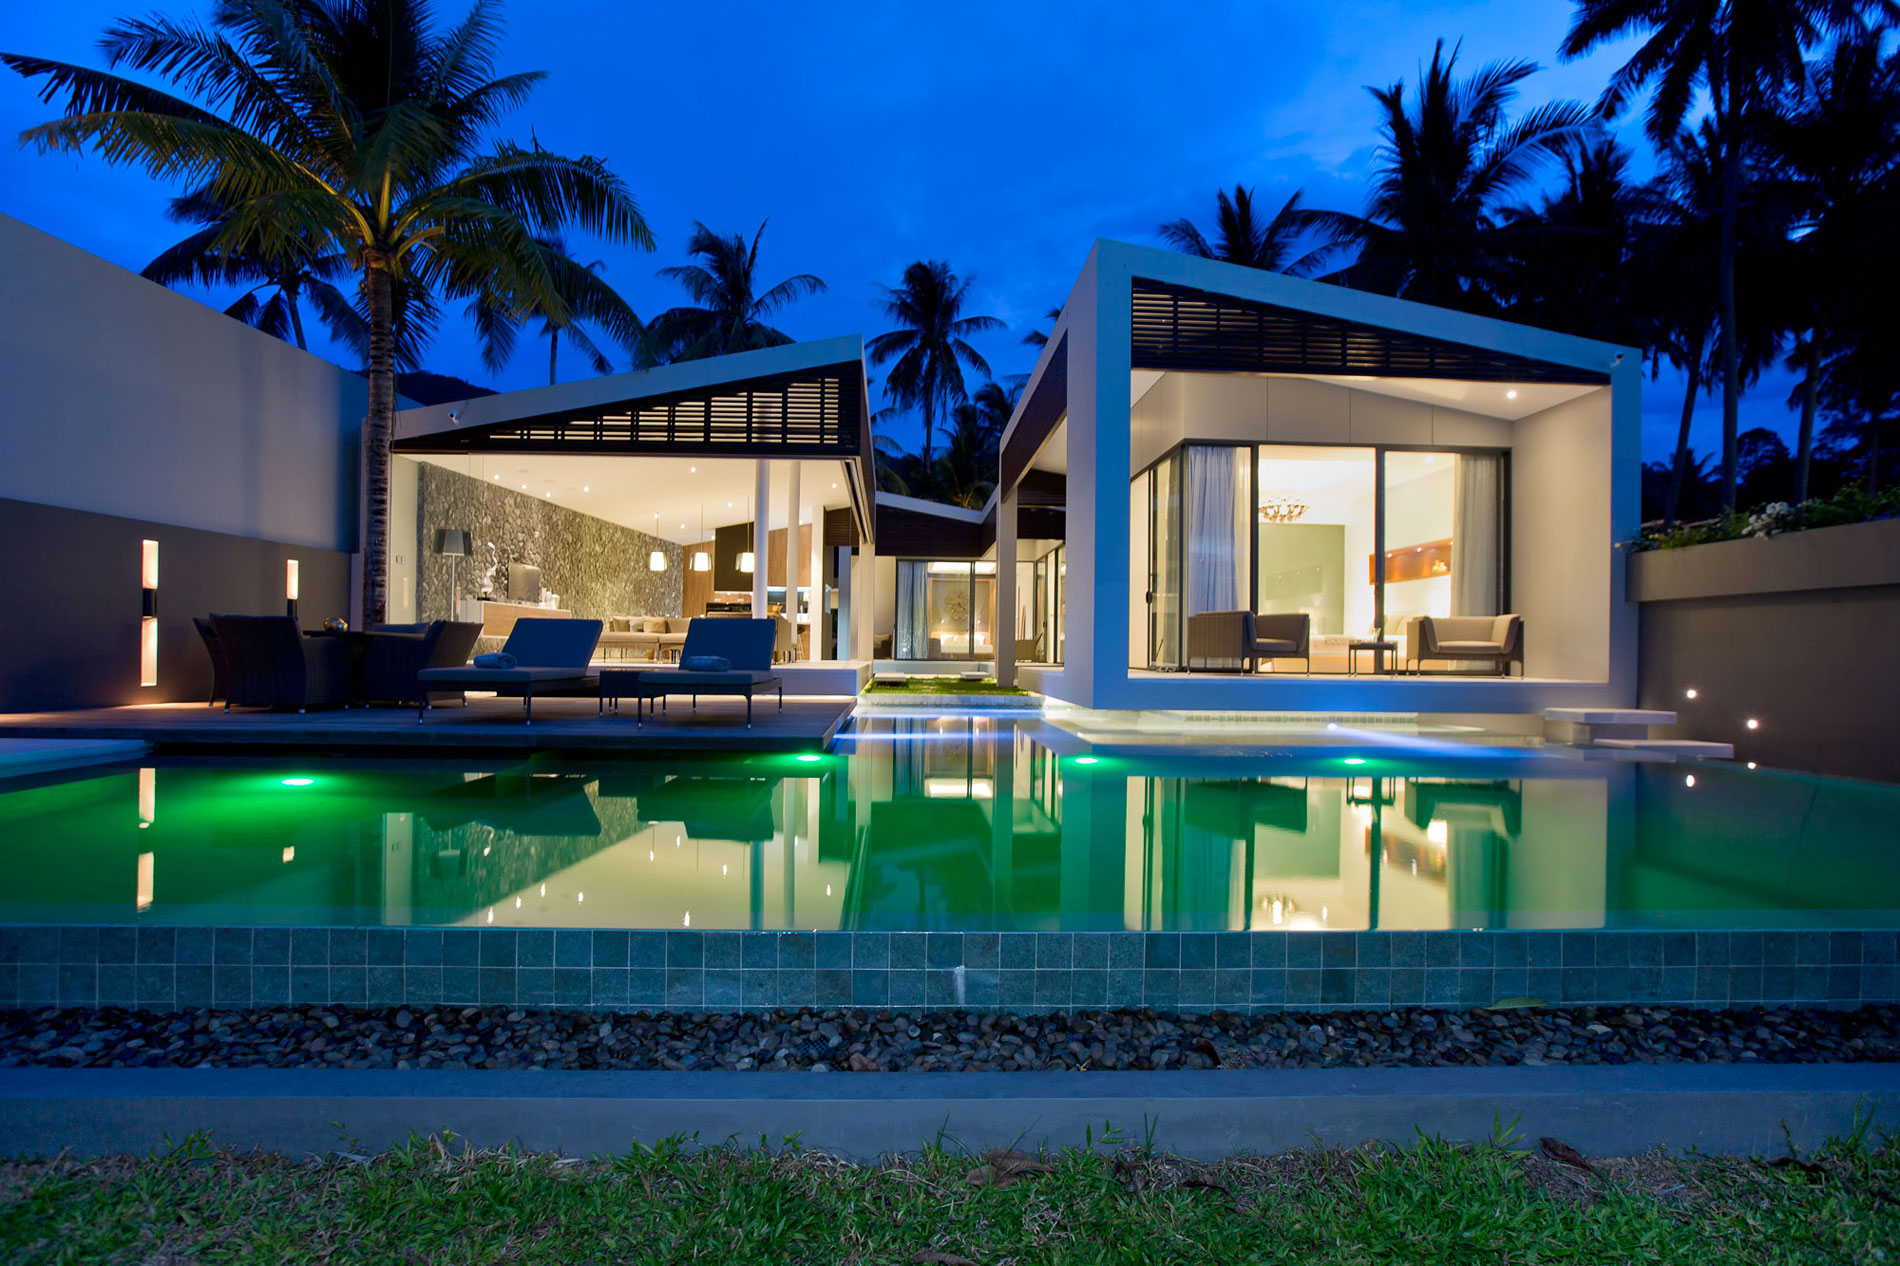 mandalay beach villas 57